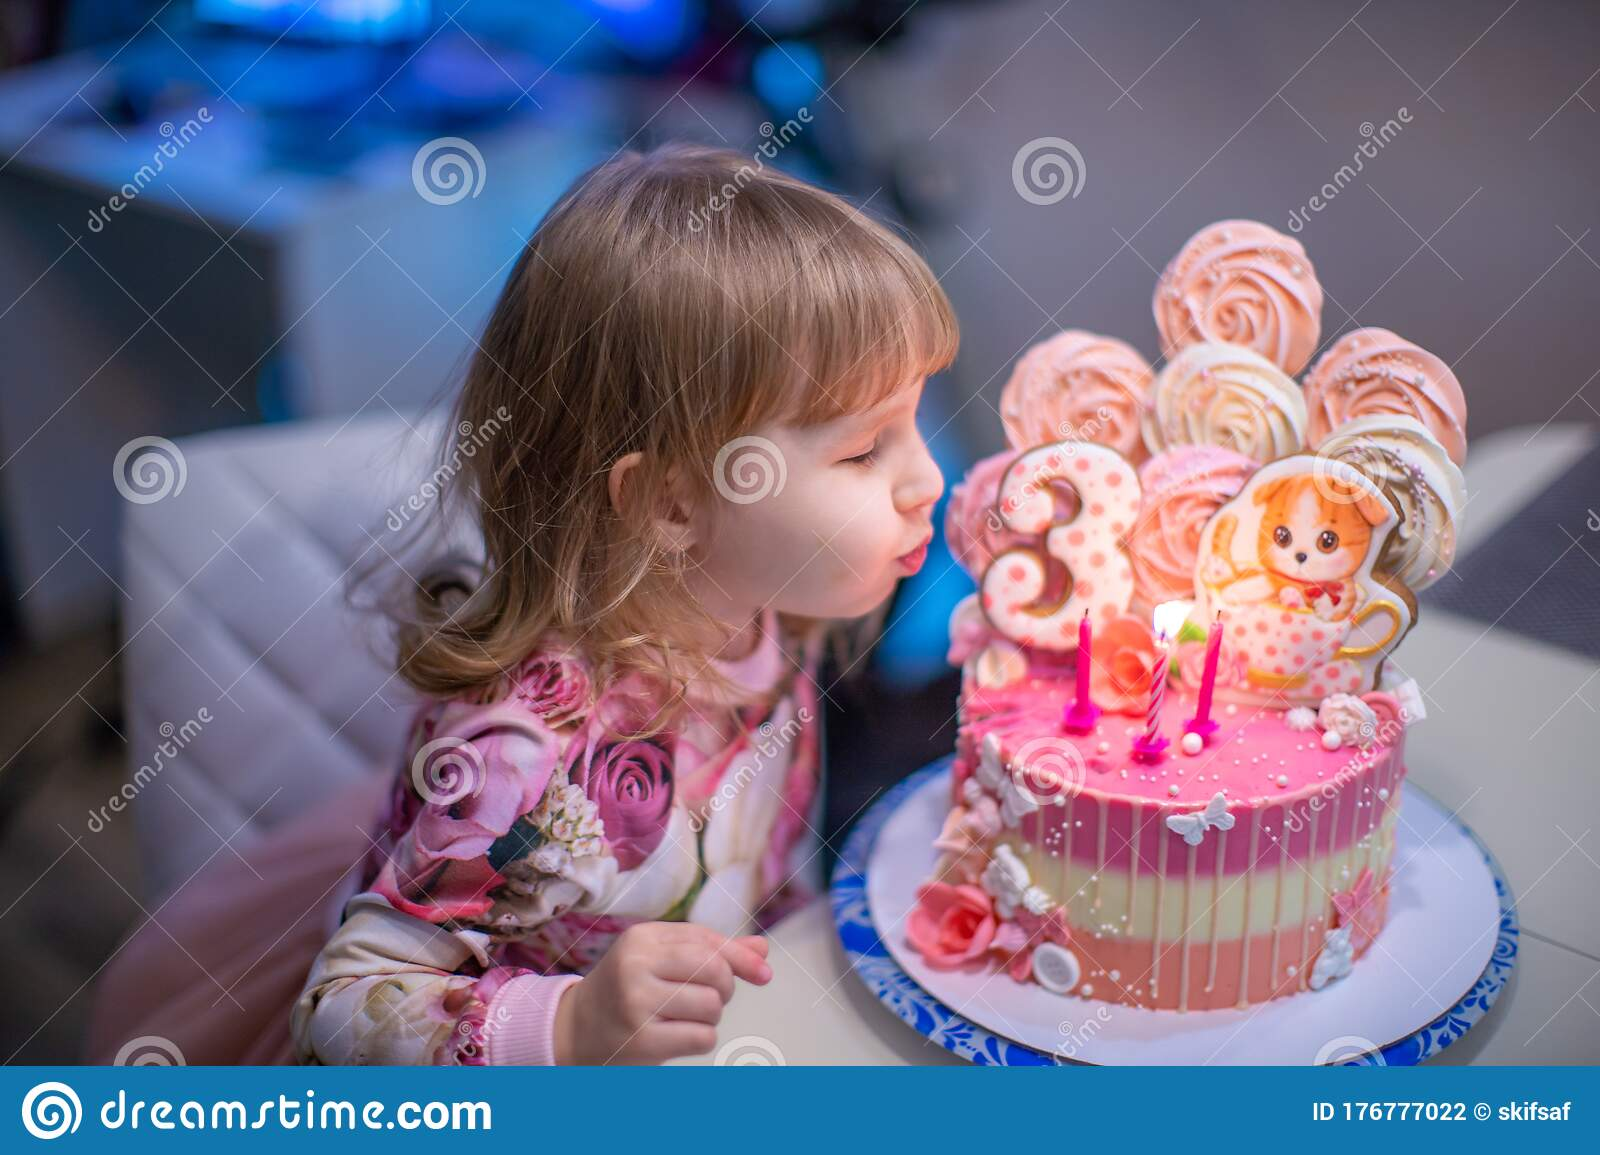 Birthday A Happy Little Girl Blows Out The Candles On The Birthday Cake Stock Photo Image Of Event Blow 176777022